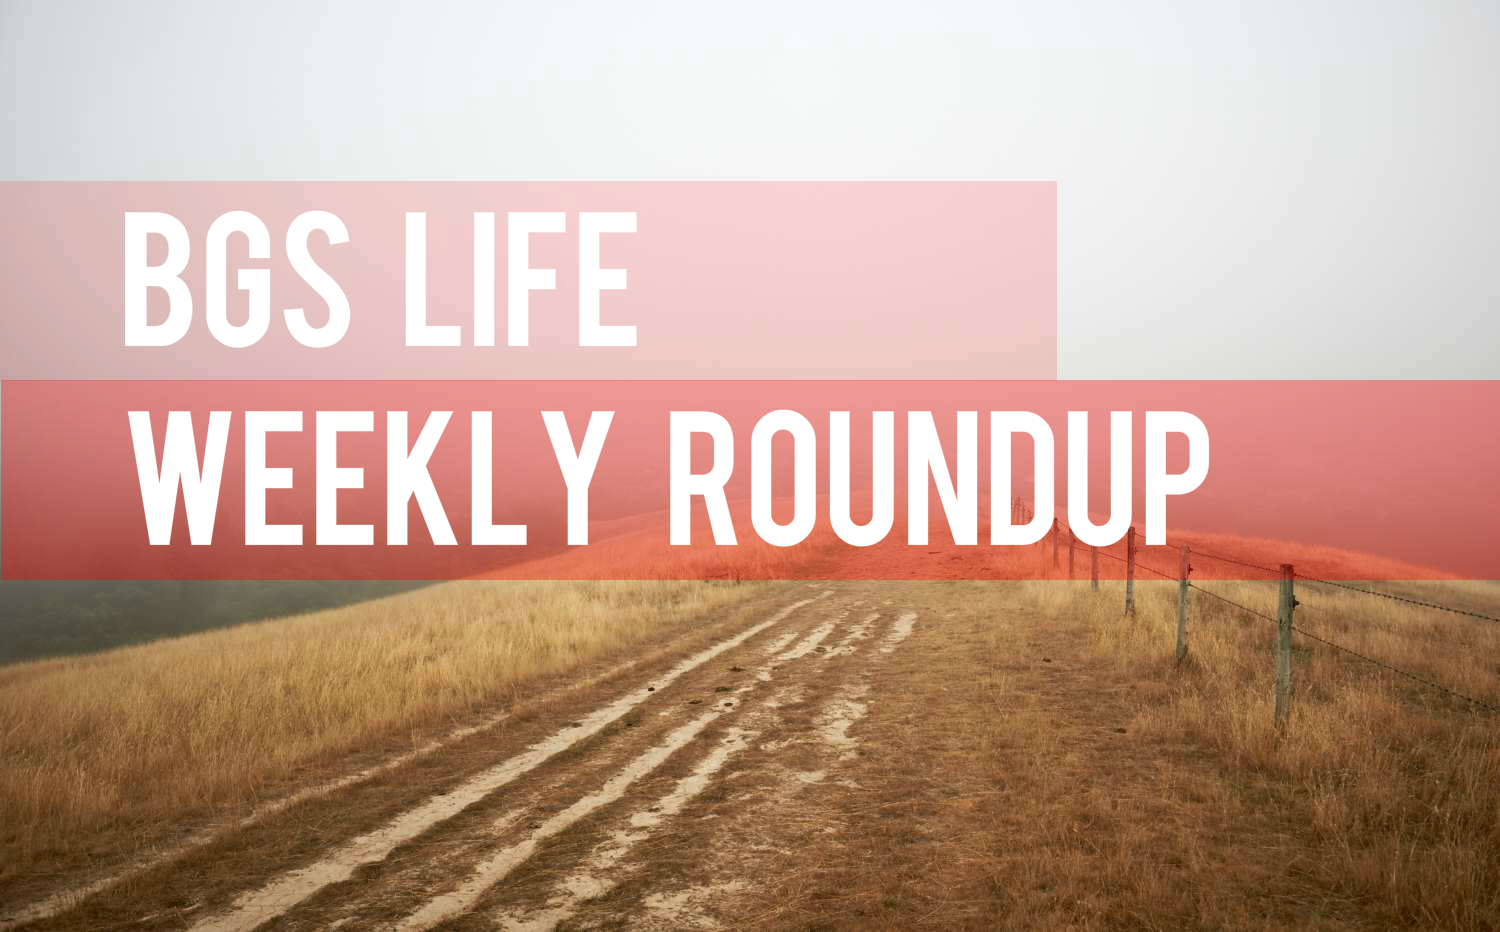 The Bgs Life Weekly Roundup: Hot Chicken, Graceland Too, Joshua Trees and More